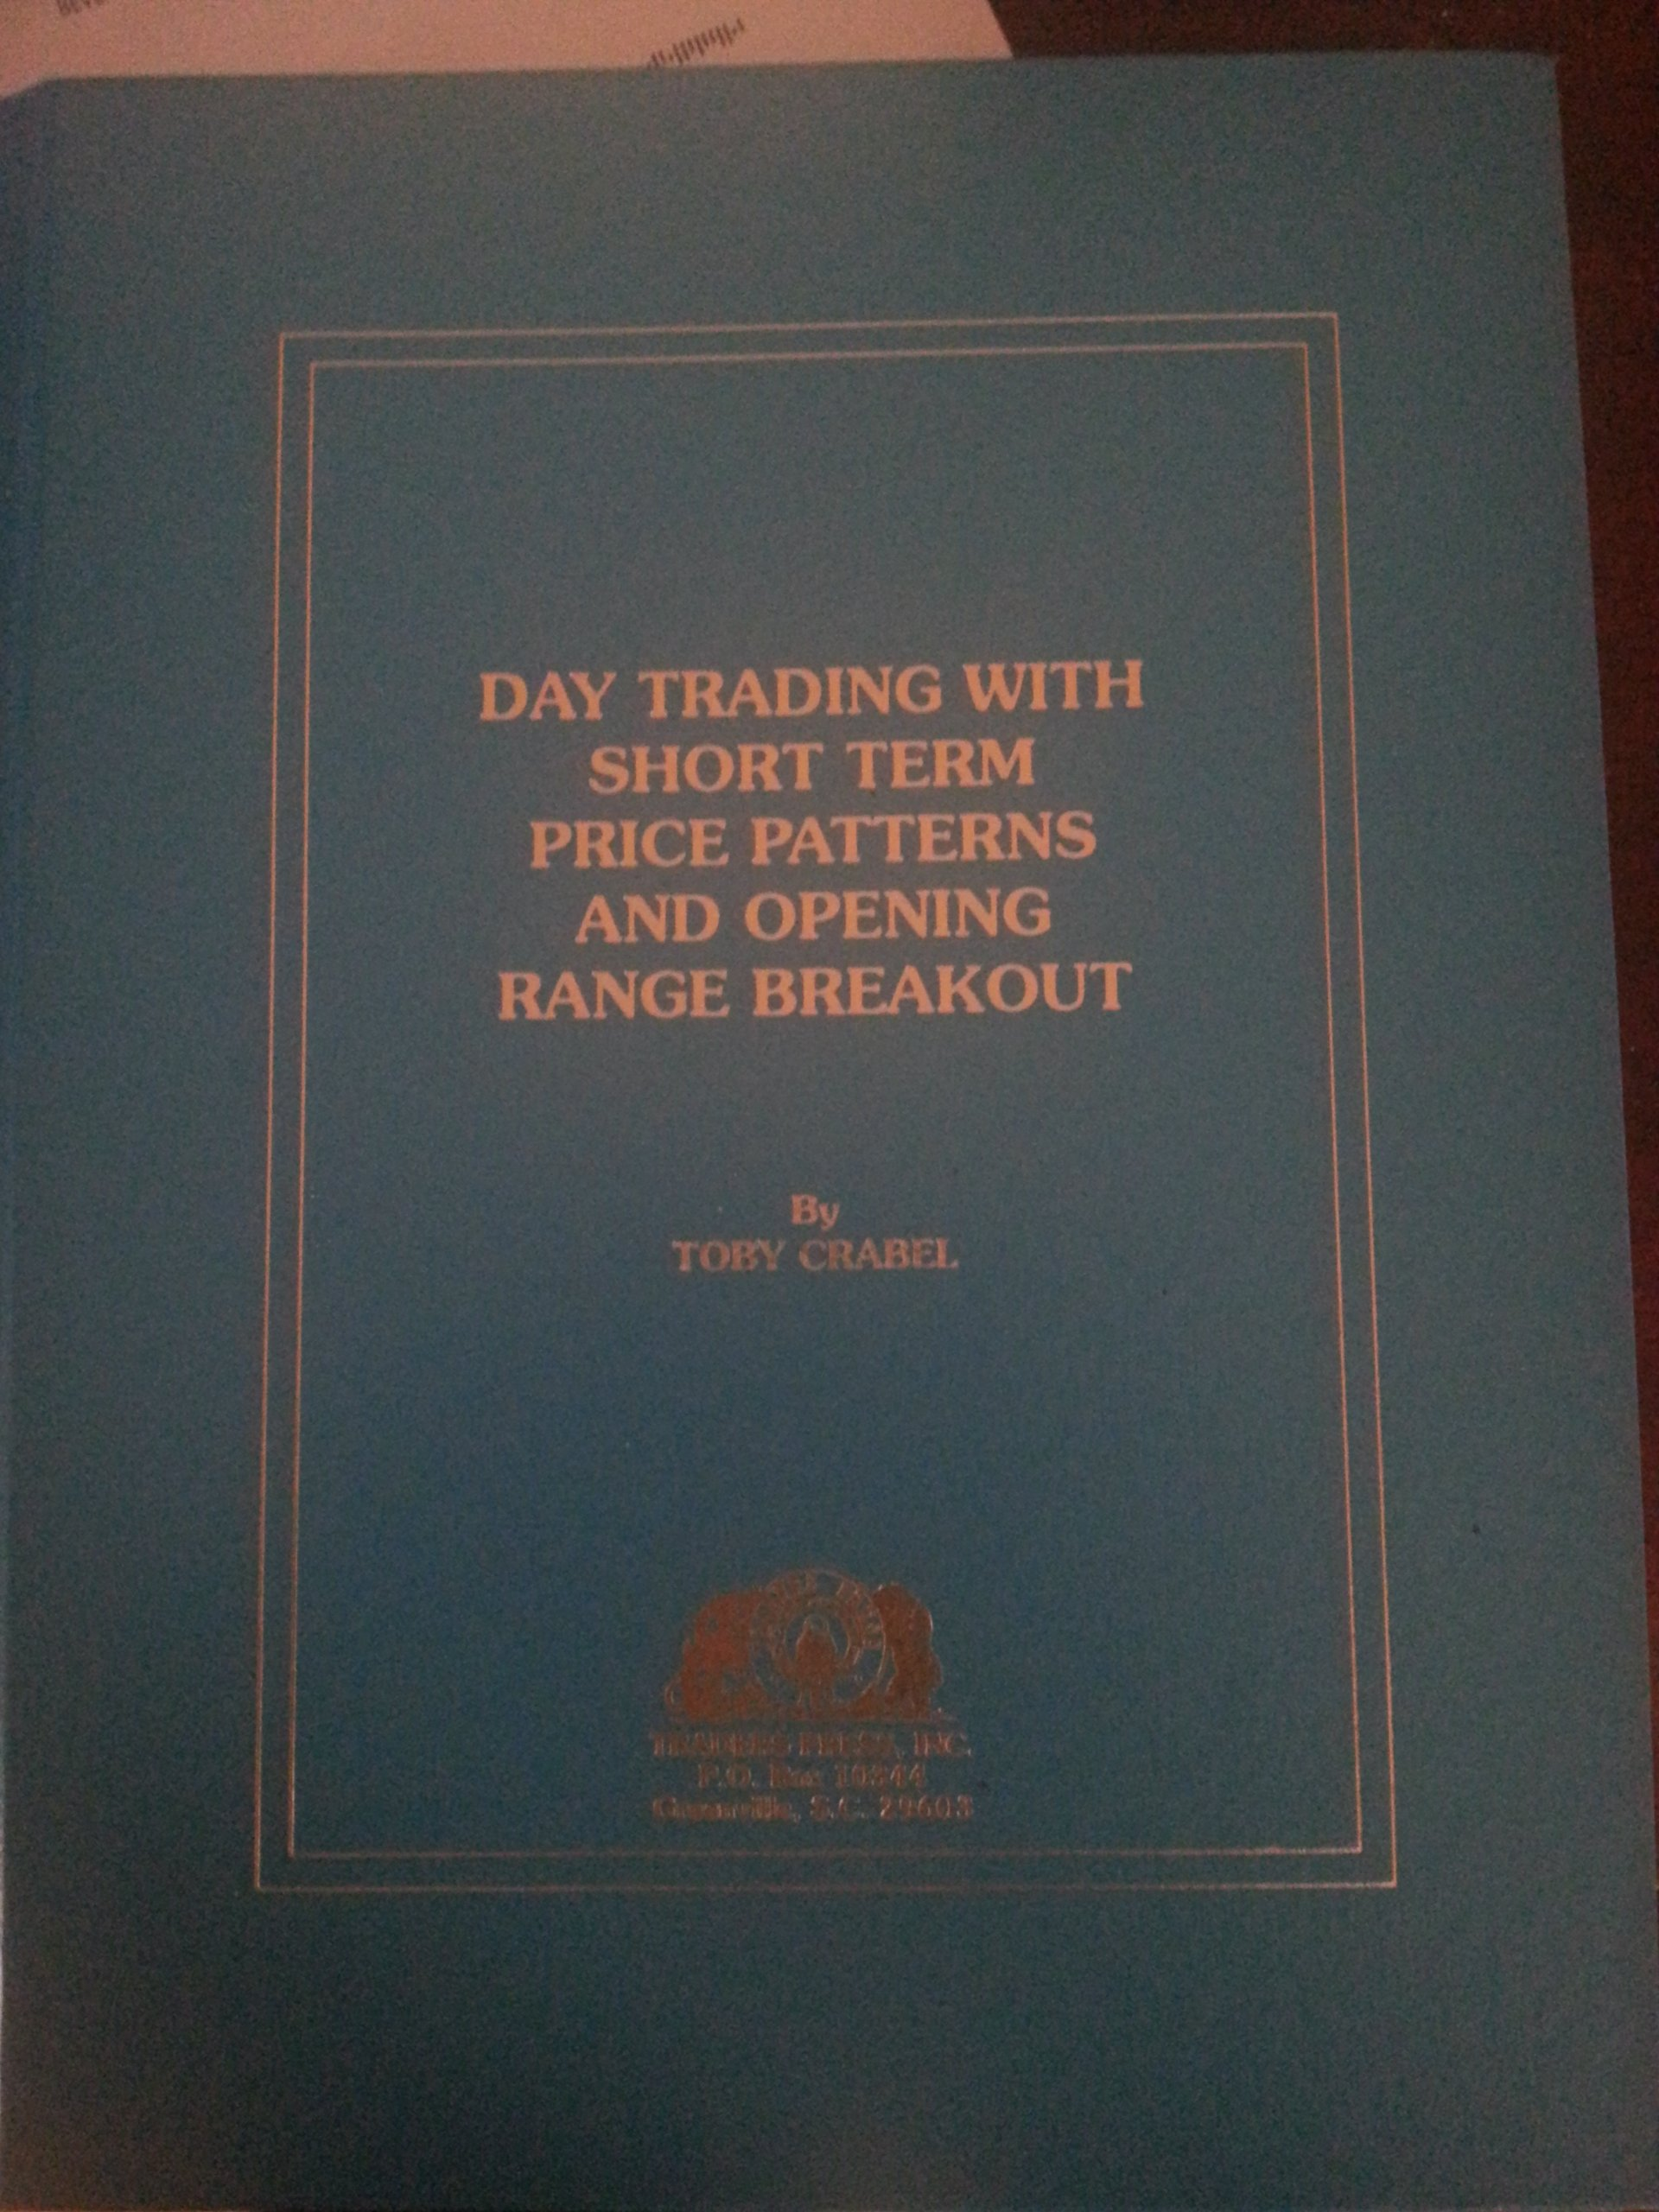 Day Trading With Short Term Price Patterns and Opening Range Breakout by Traders Pr